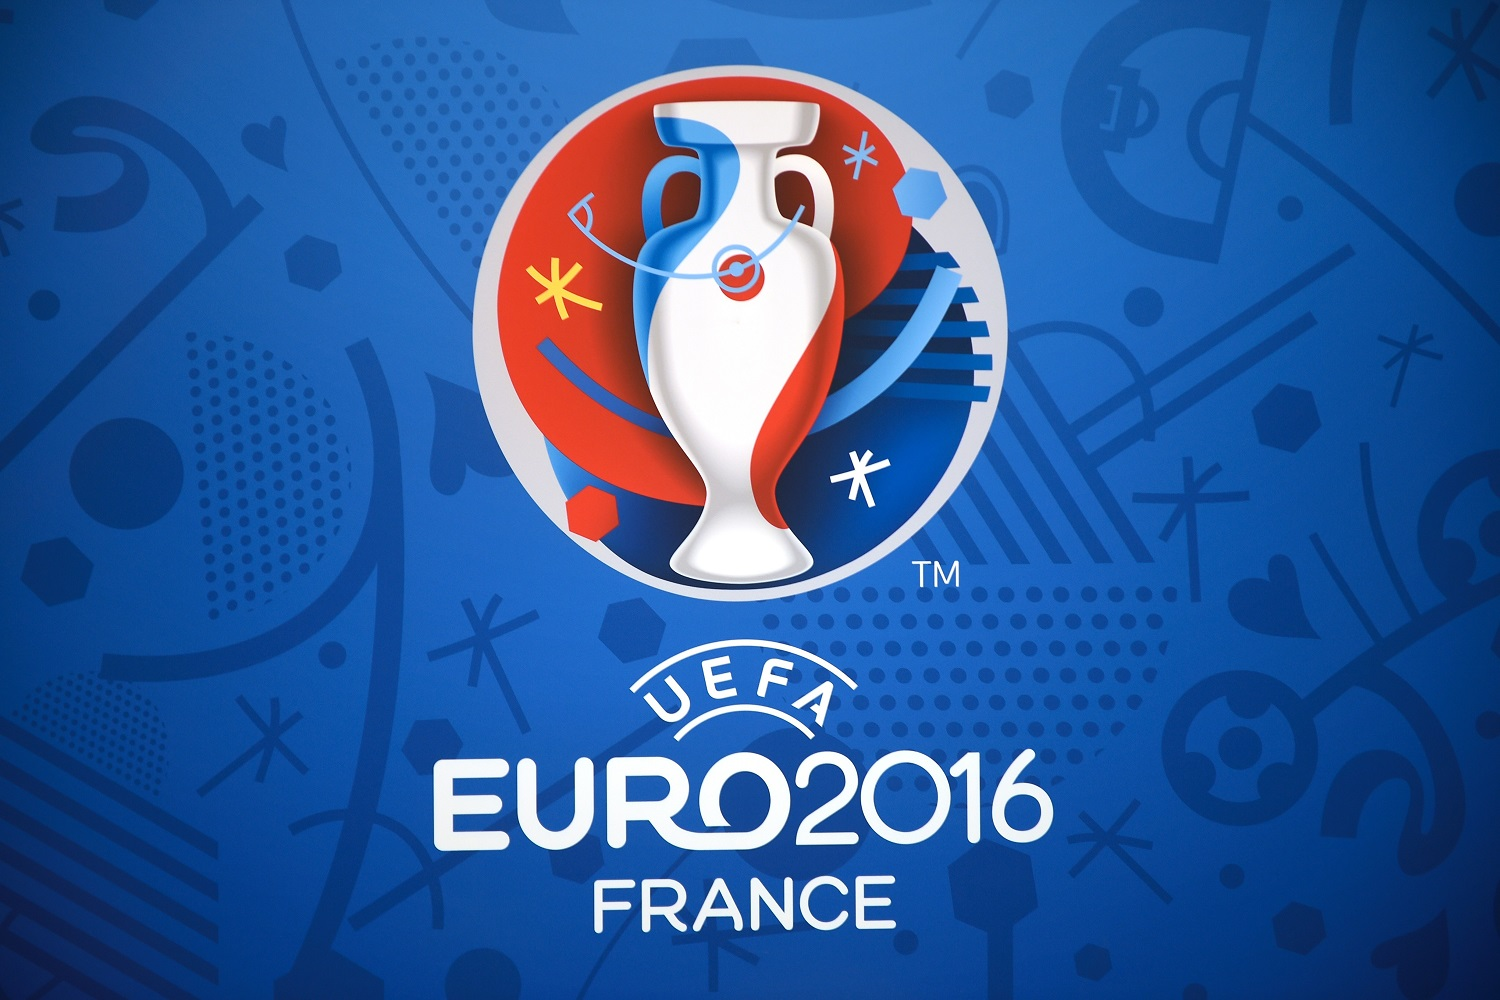 France kick off UEFA EURO 2016 against Romania